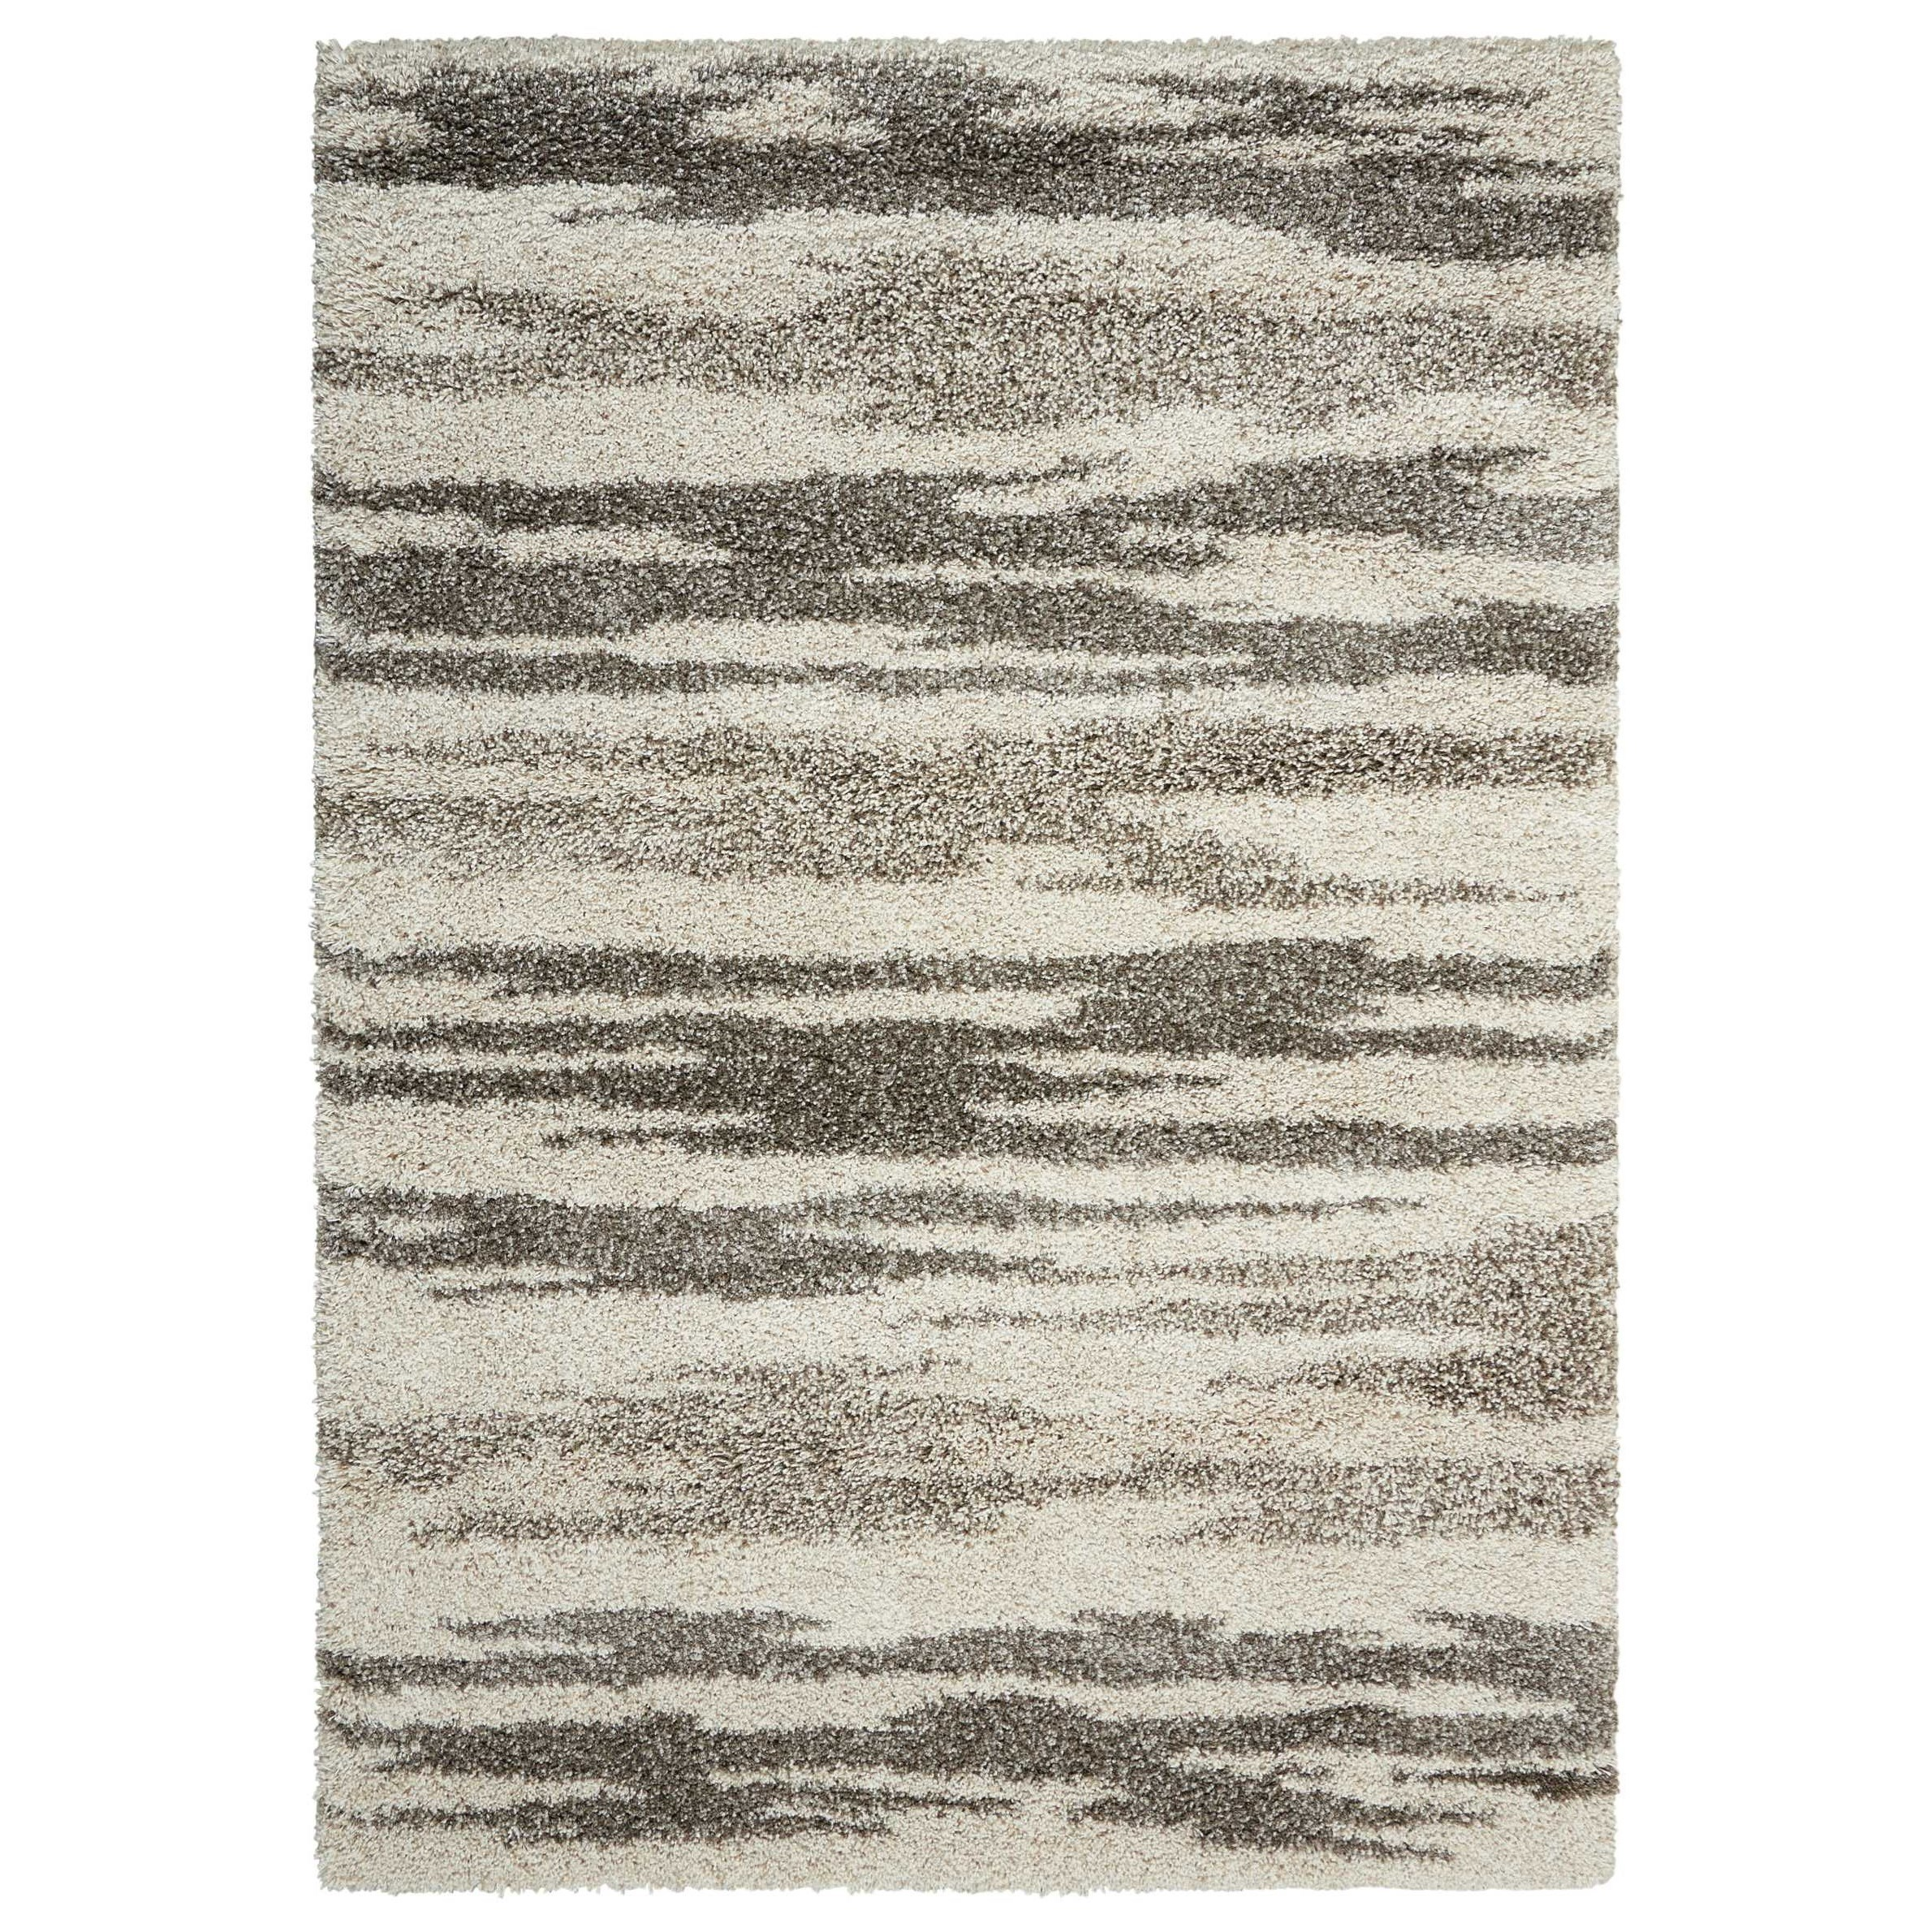 "Amore 5'3"" x 7'5"" Oyster Rectangle Rug by Nourison at Home Collections Furniture"